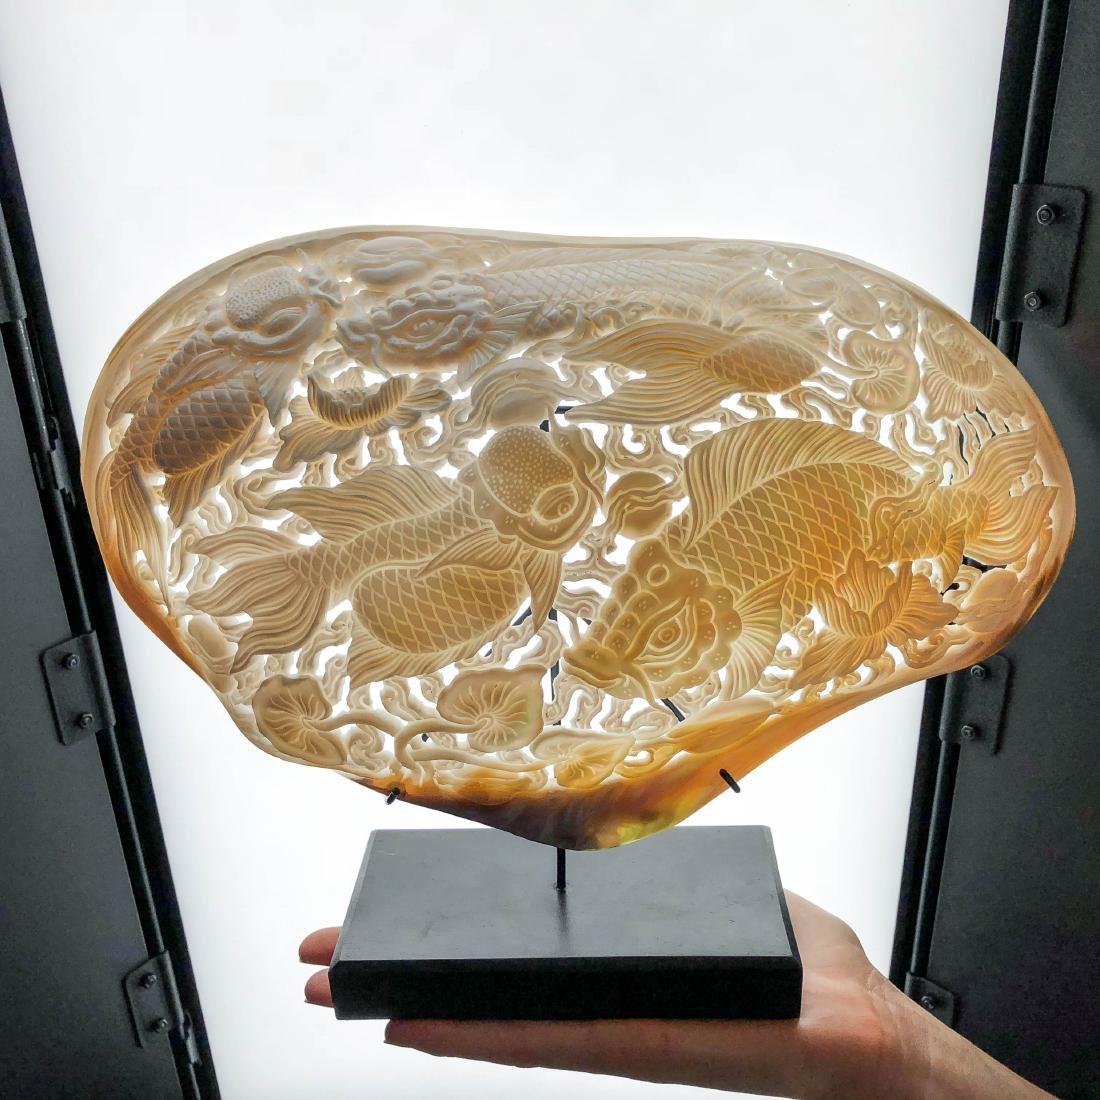 Giant engraved mother of pearl shell - Japanese KOI